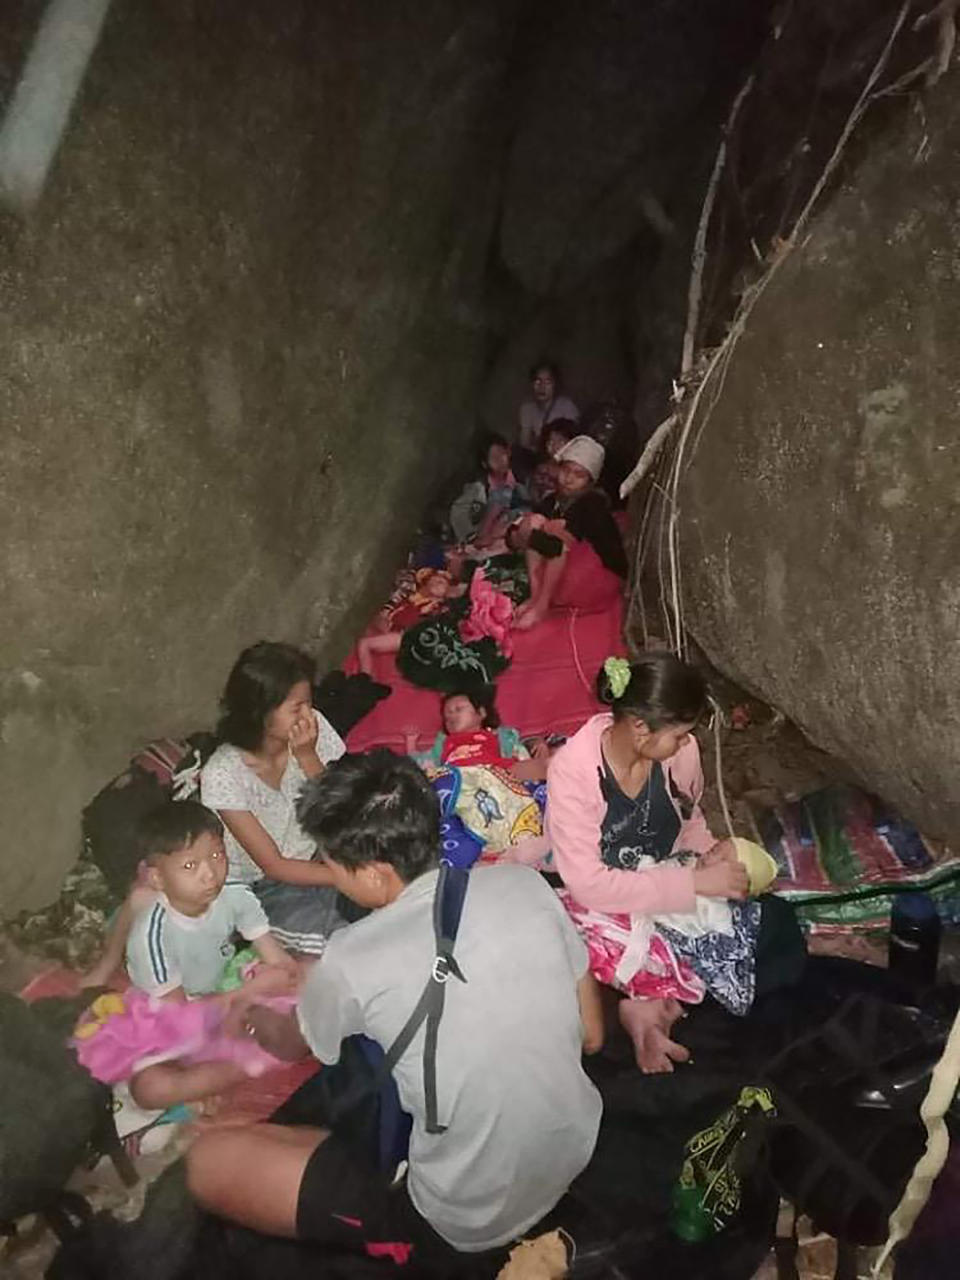 In this photo provided by Free Burma Rangers, villagers shelter in the open due to airstrikes, Saturday, March 27, 2021, in Deh Bu Noh, in Karen state, Myanmar. Myanmar military jets hit a village in Karen State, on Saturday night, killing a few people and wounding others, according to relief organizations.(Free Burma Rangers via AP)